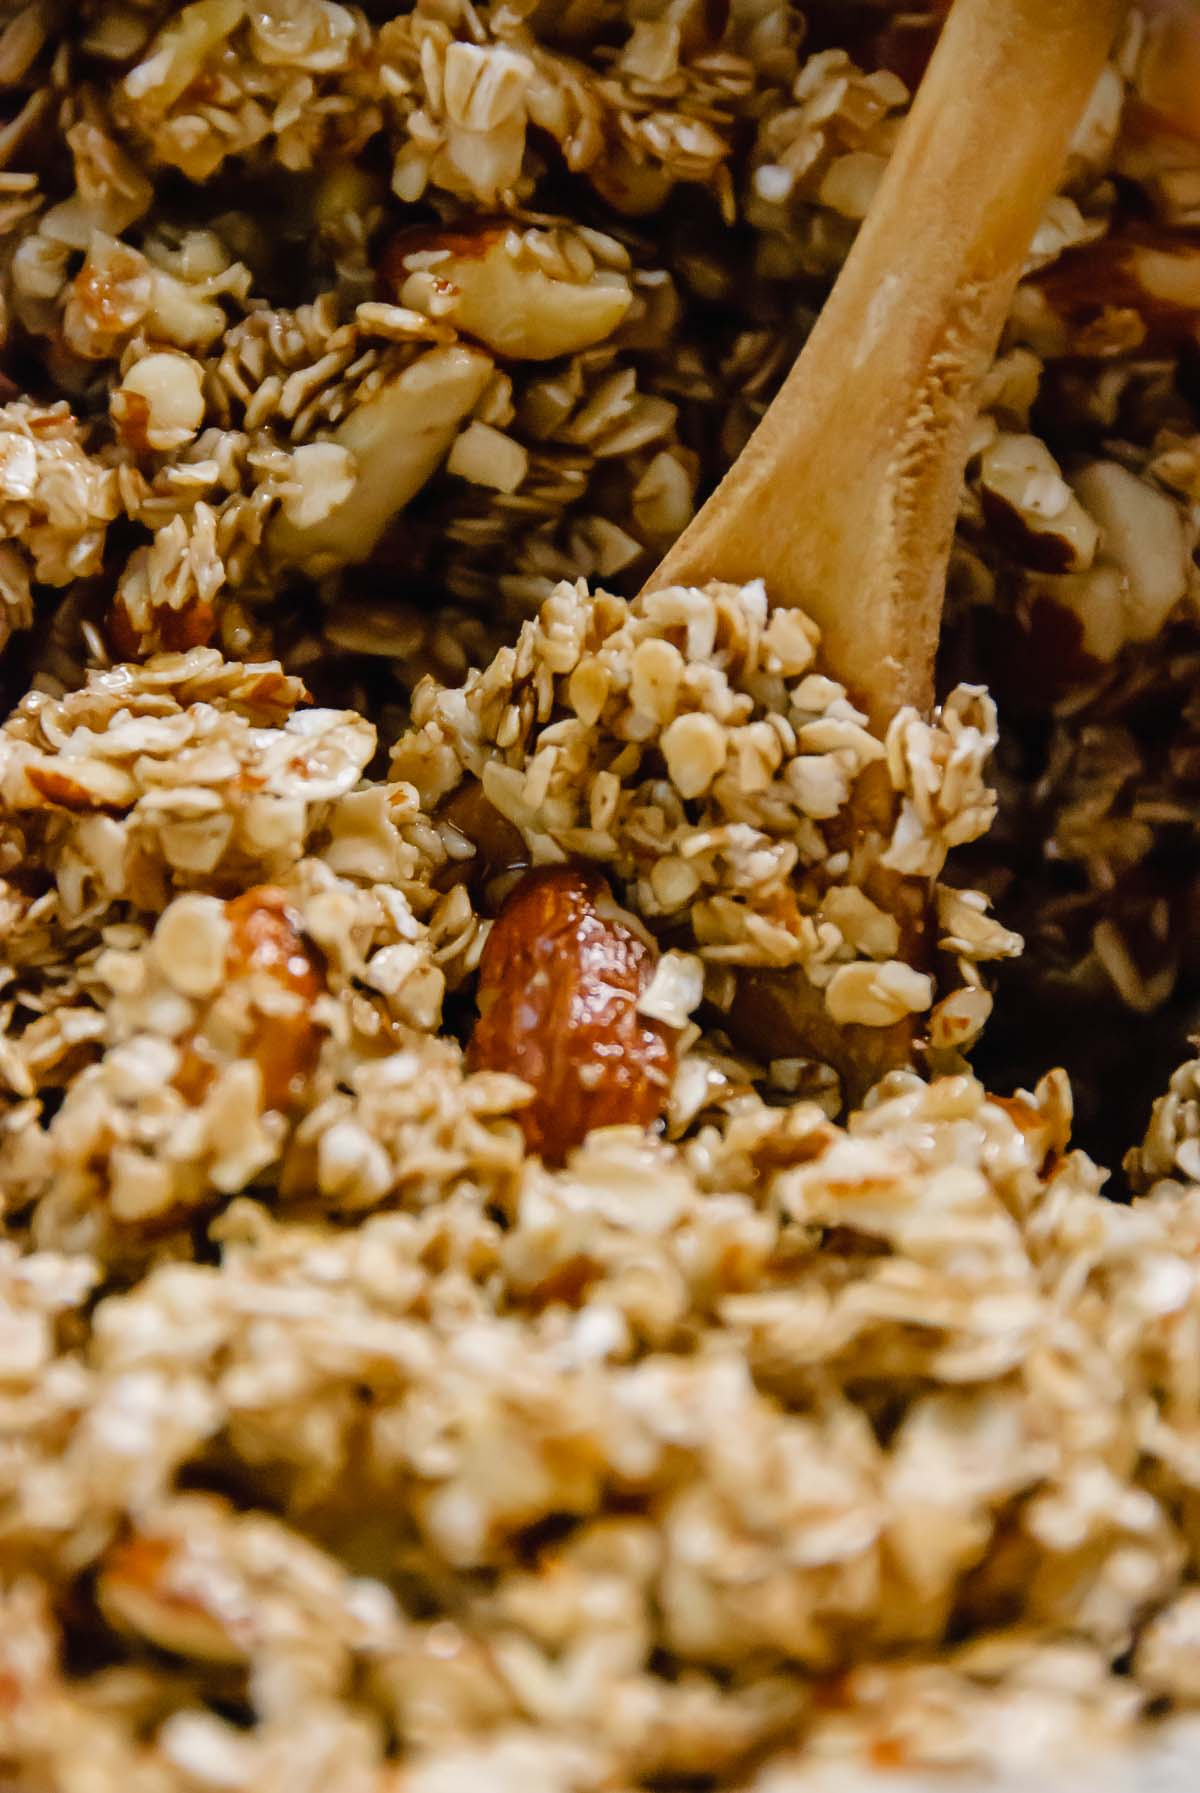 Basic Homemade Granola that is easy to make and a great foundation recipe for your own twist! Made with oats, almonds, cinnamon, maple syrup and a little brown sugar. Deliciously good, easy, vegan and gluten-free! - thebeaderchef.com #granola #homemadegranola #maplesyrup #vegan #glutenfree